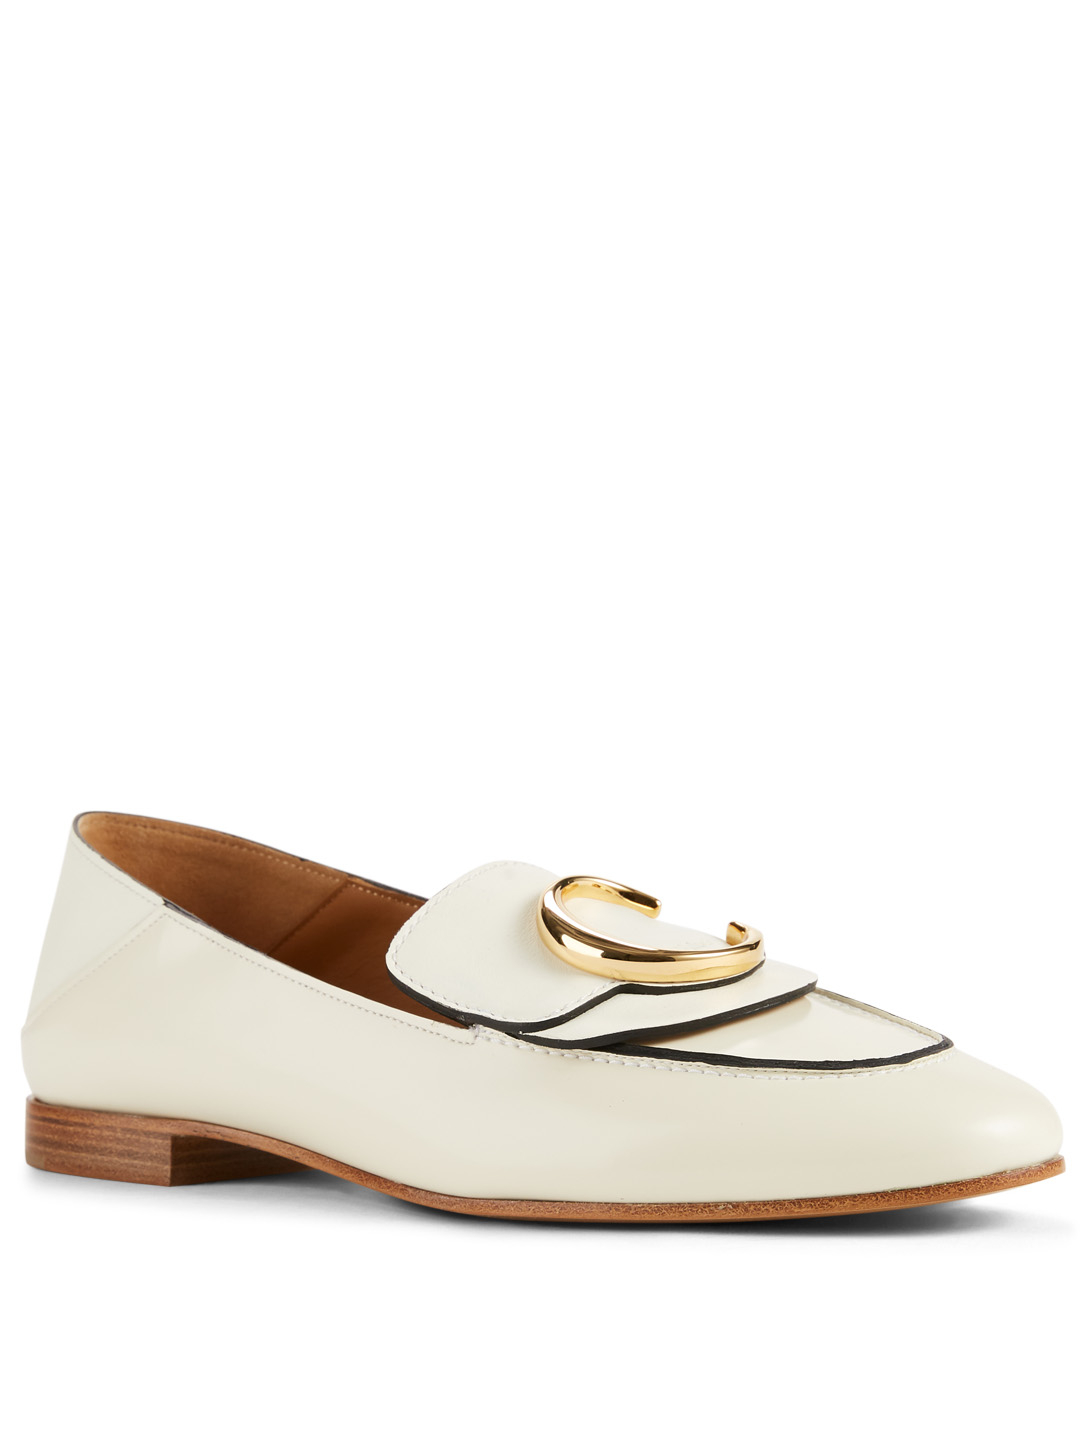 CHLOÉ Chloé Leather Loafers Women's White